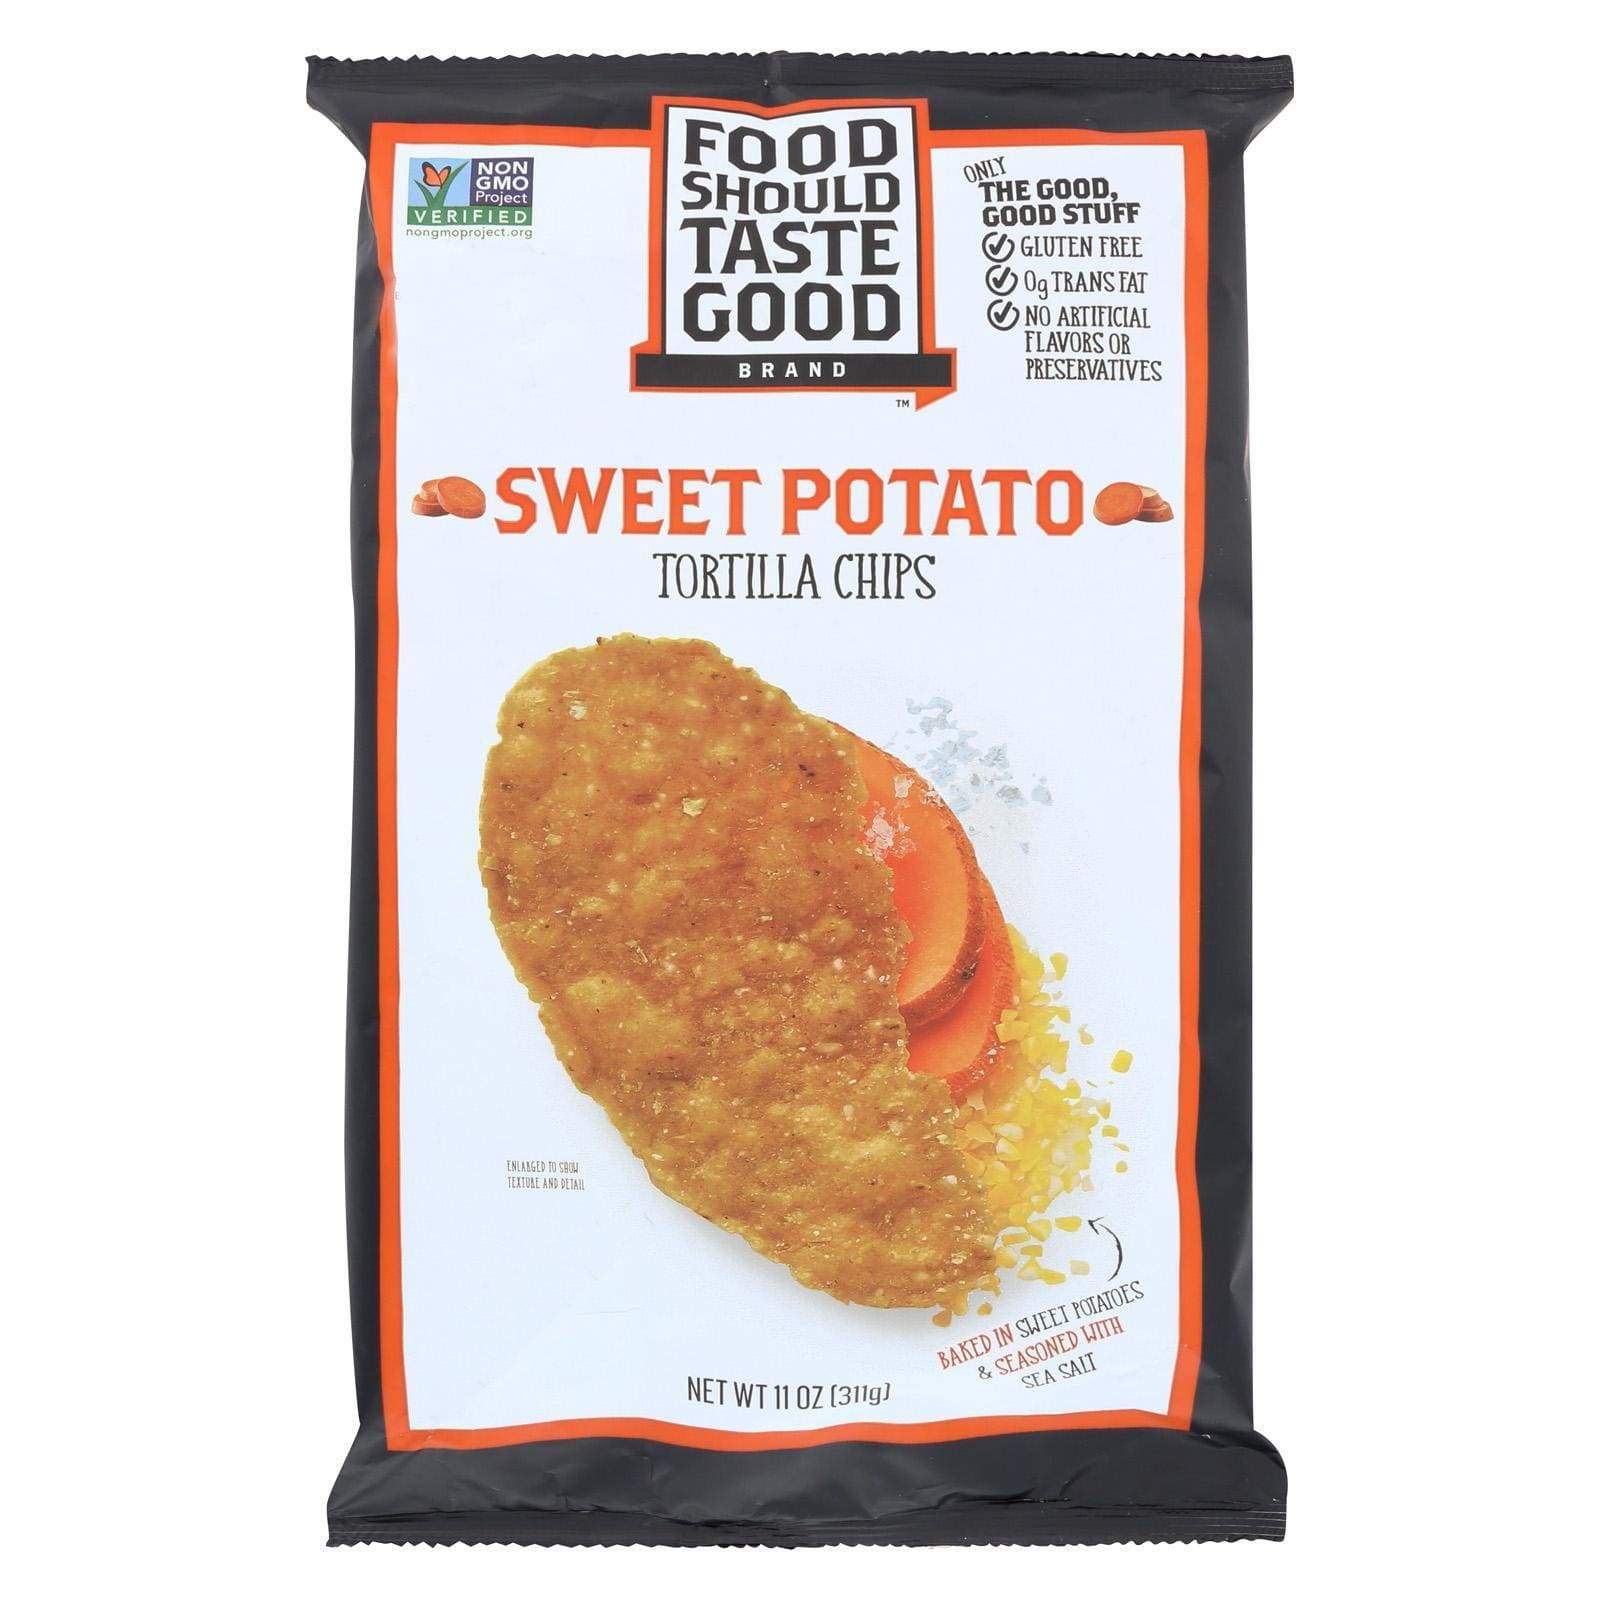 Food Should Taste Good Chips, Pretzels & Popcorn Food Should Taste Good Sweet Potato Tortilla Chips - Sweet Potato - Case Of 12 - 11 Oz.